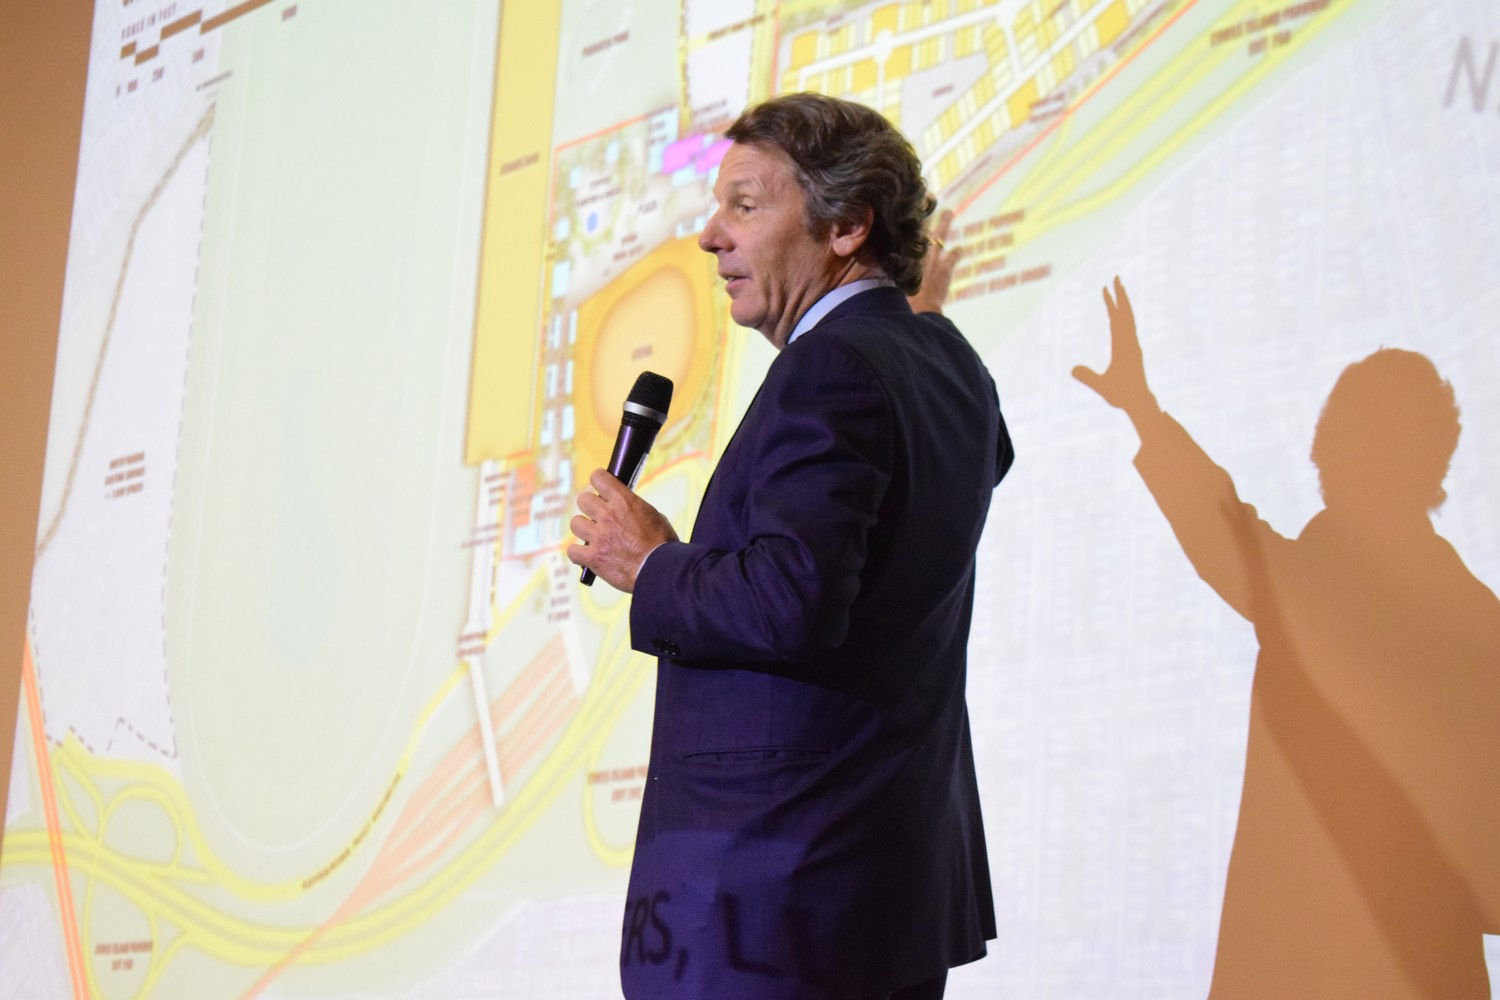 Managing Partner Richard Browne, of Sterling Property Development, explained the changes to the Belmont Arena project at a public Q&A Tuesday in Elmont.